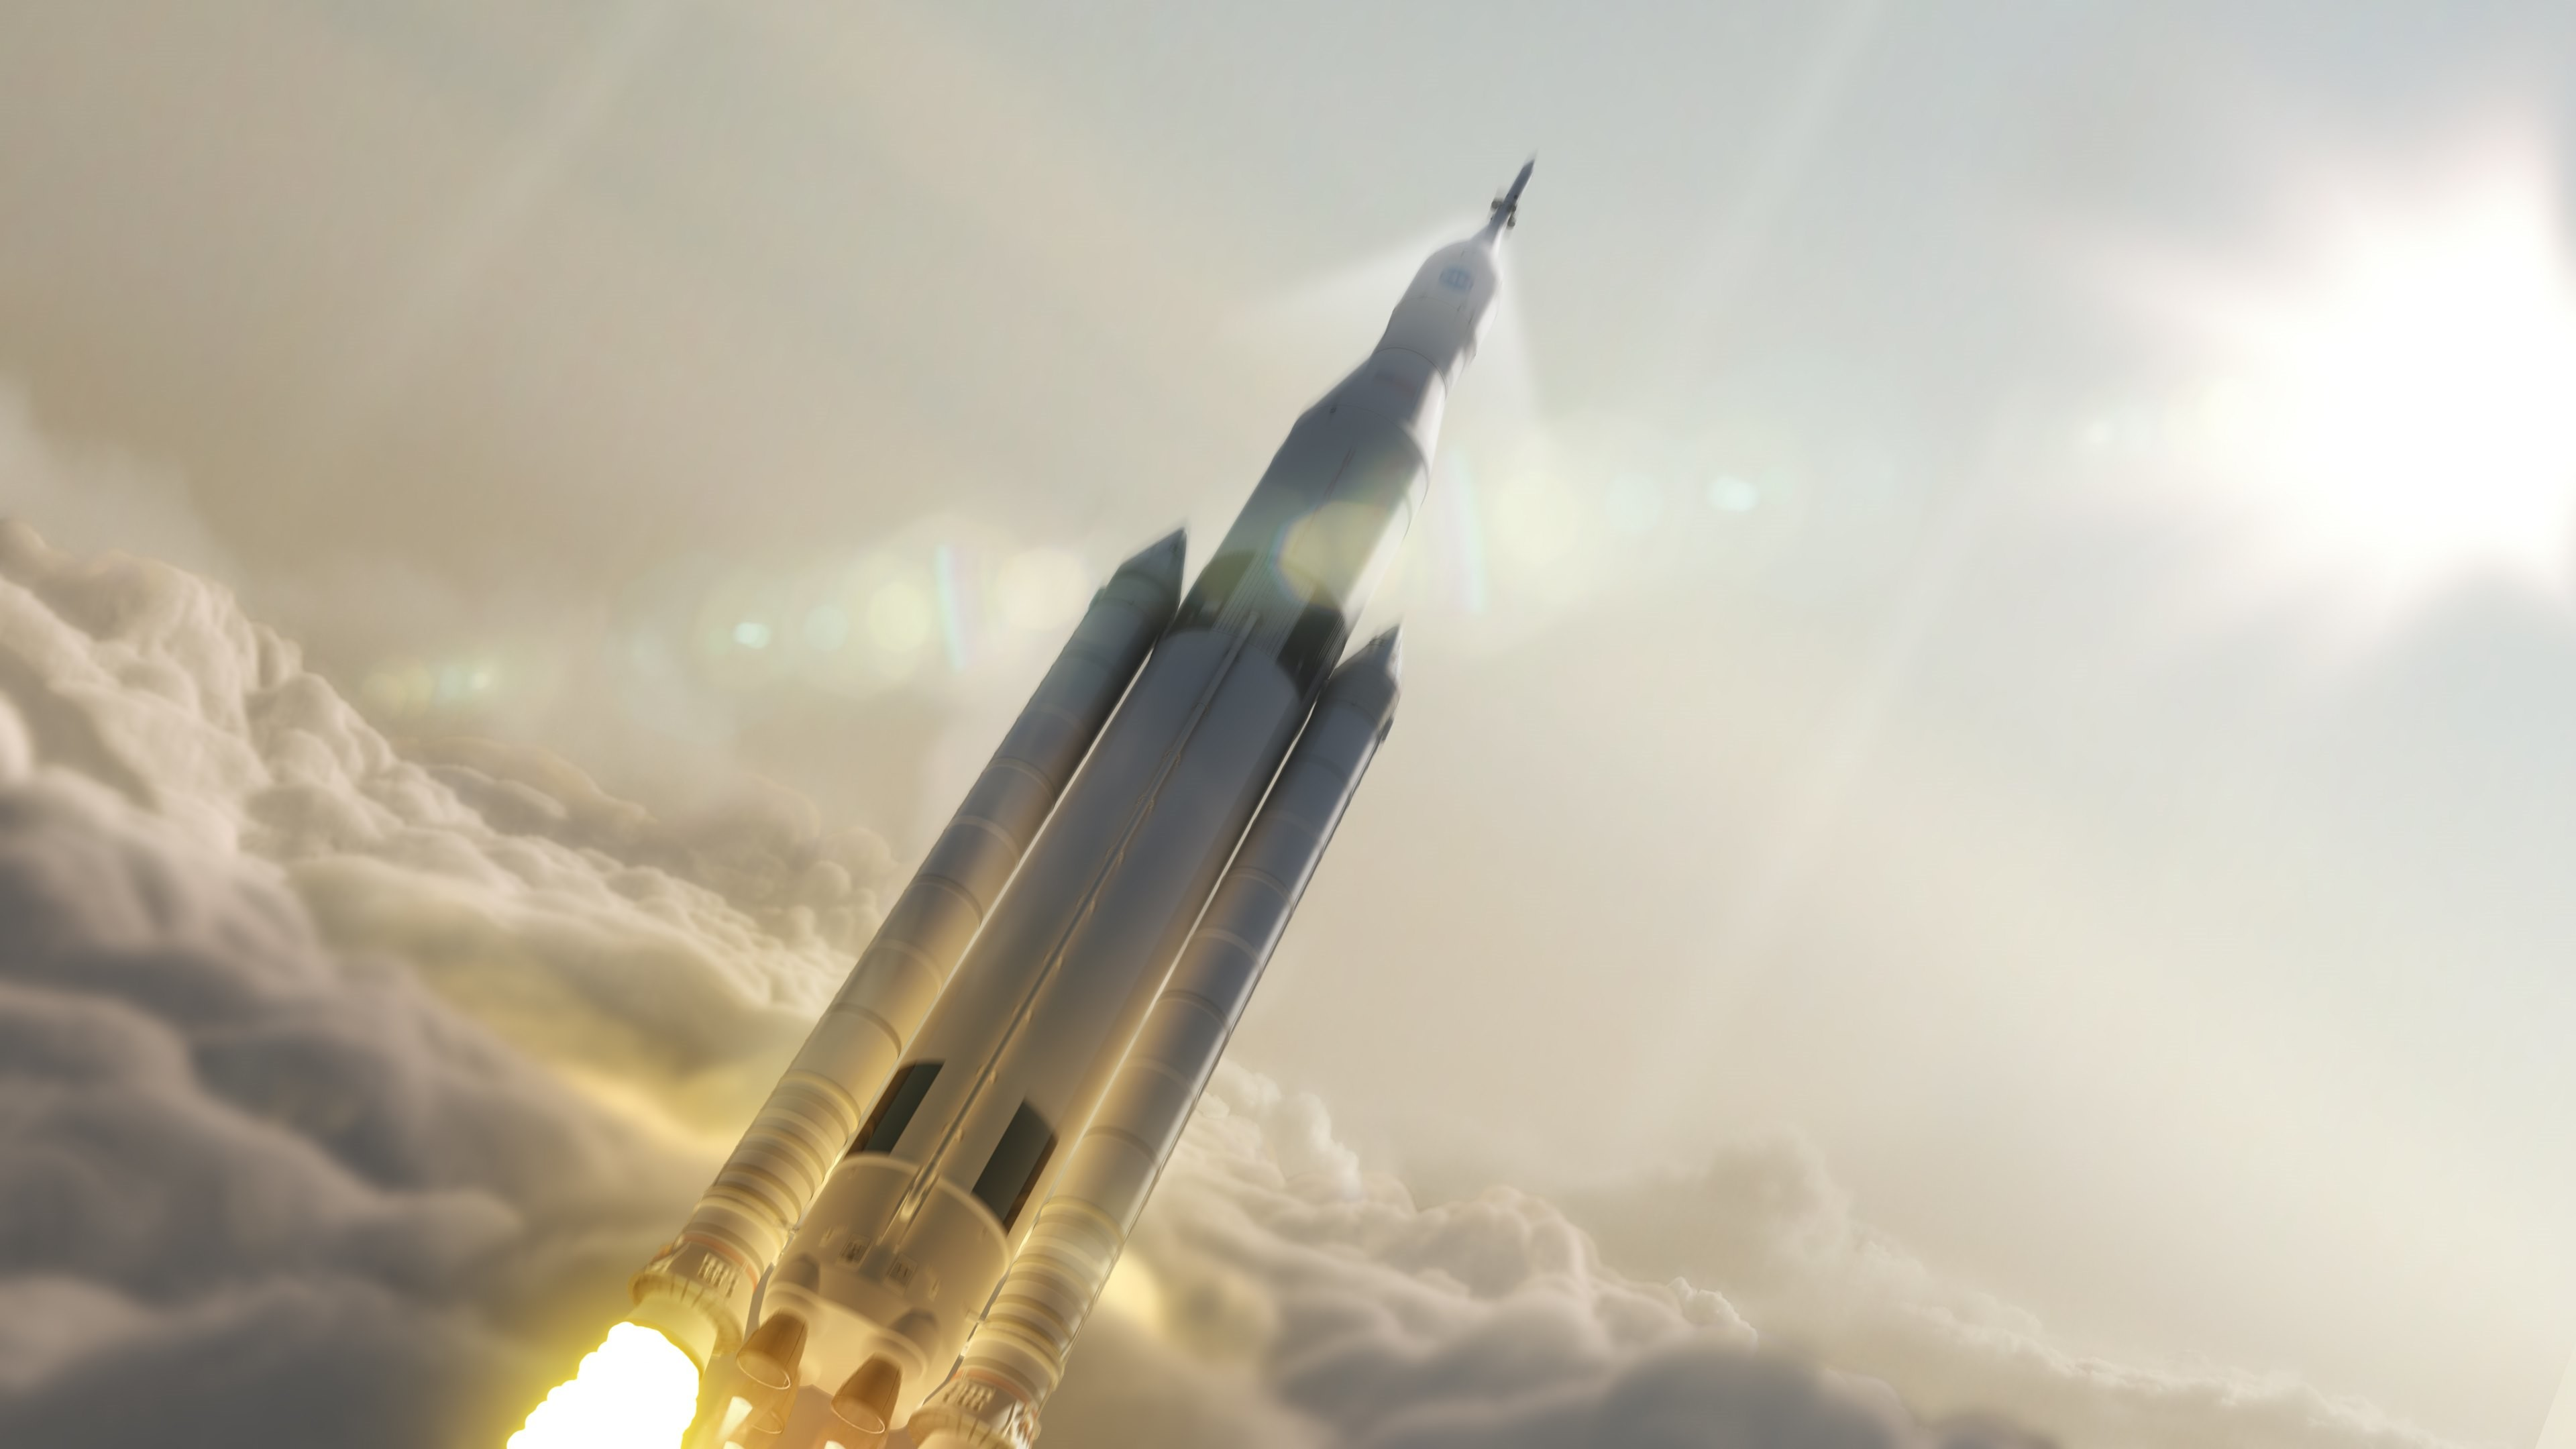 3840x2160 4K HD Wallpaper: NASA Space Launch System